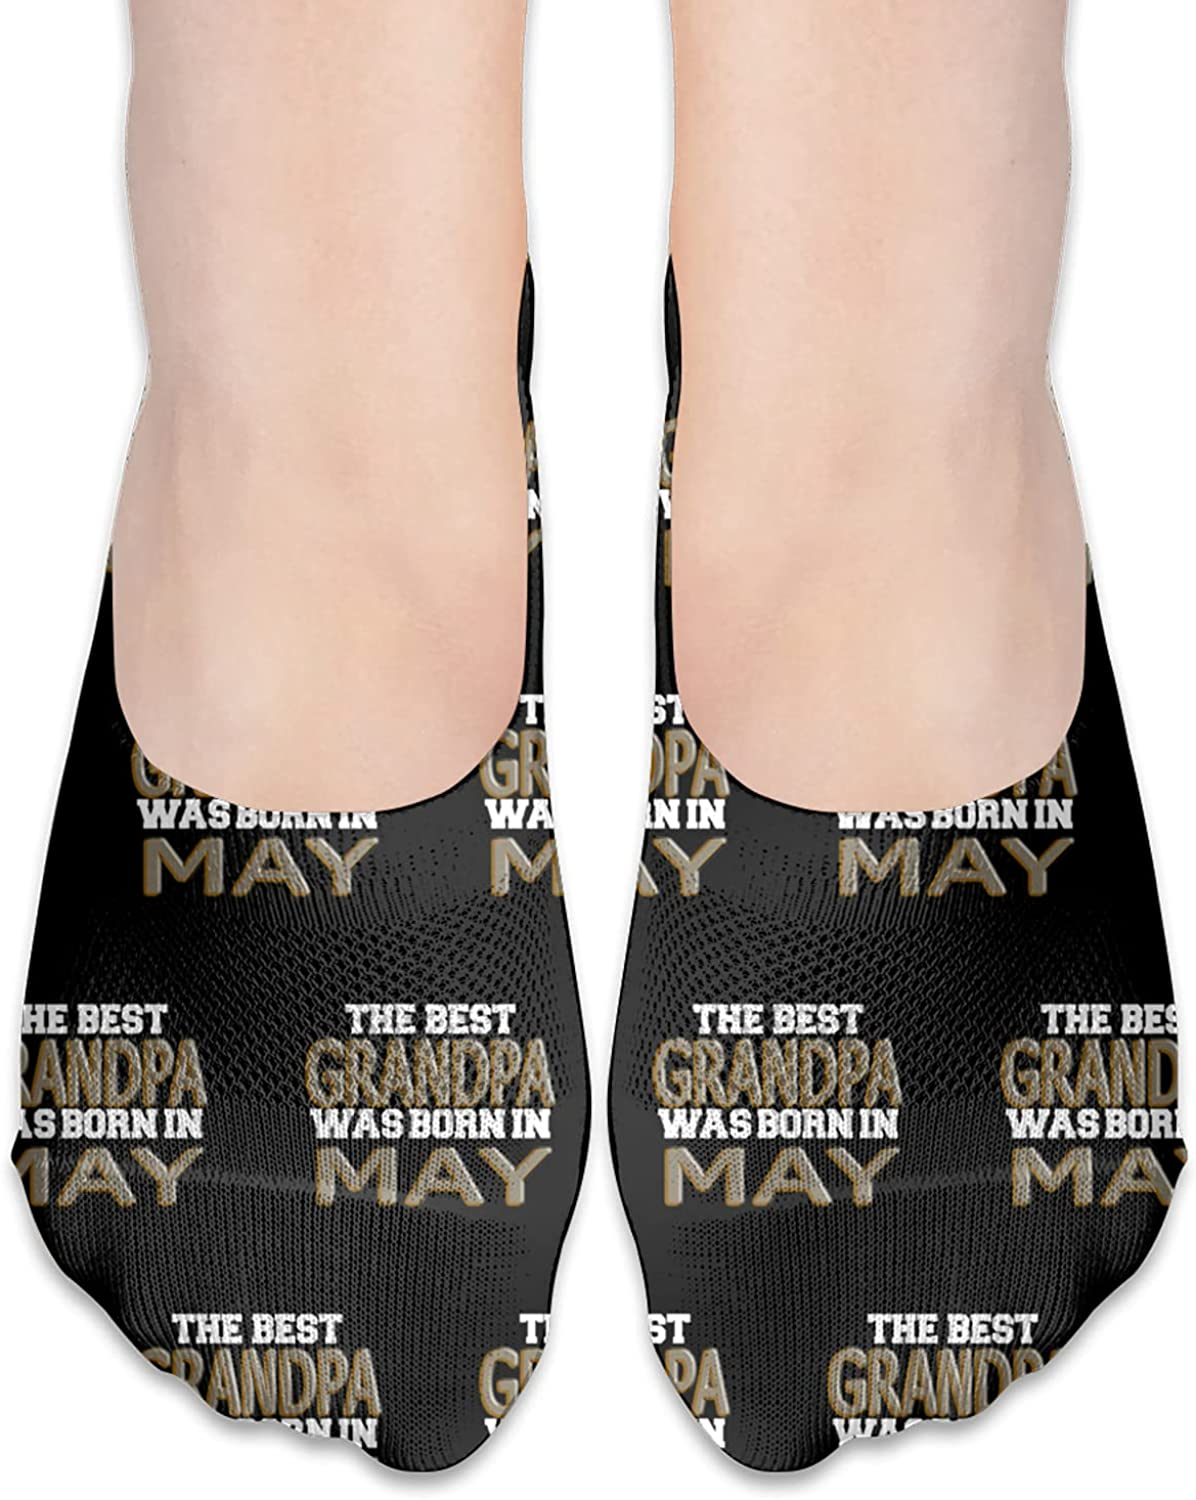 The Best Grandpa Was Born In May Funny Father Day Gift No Show Socks Adult Short Socks Athletic Casual Crew Socks